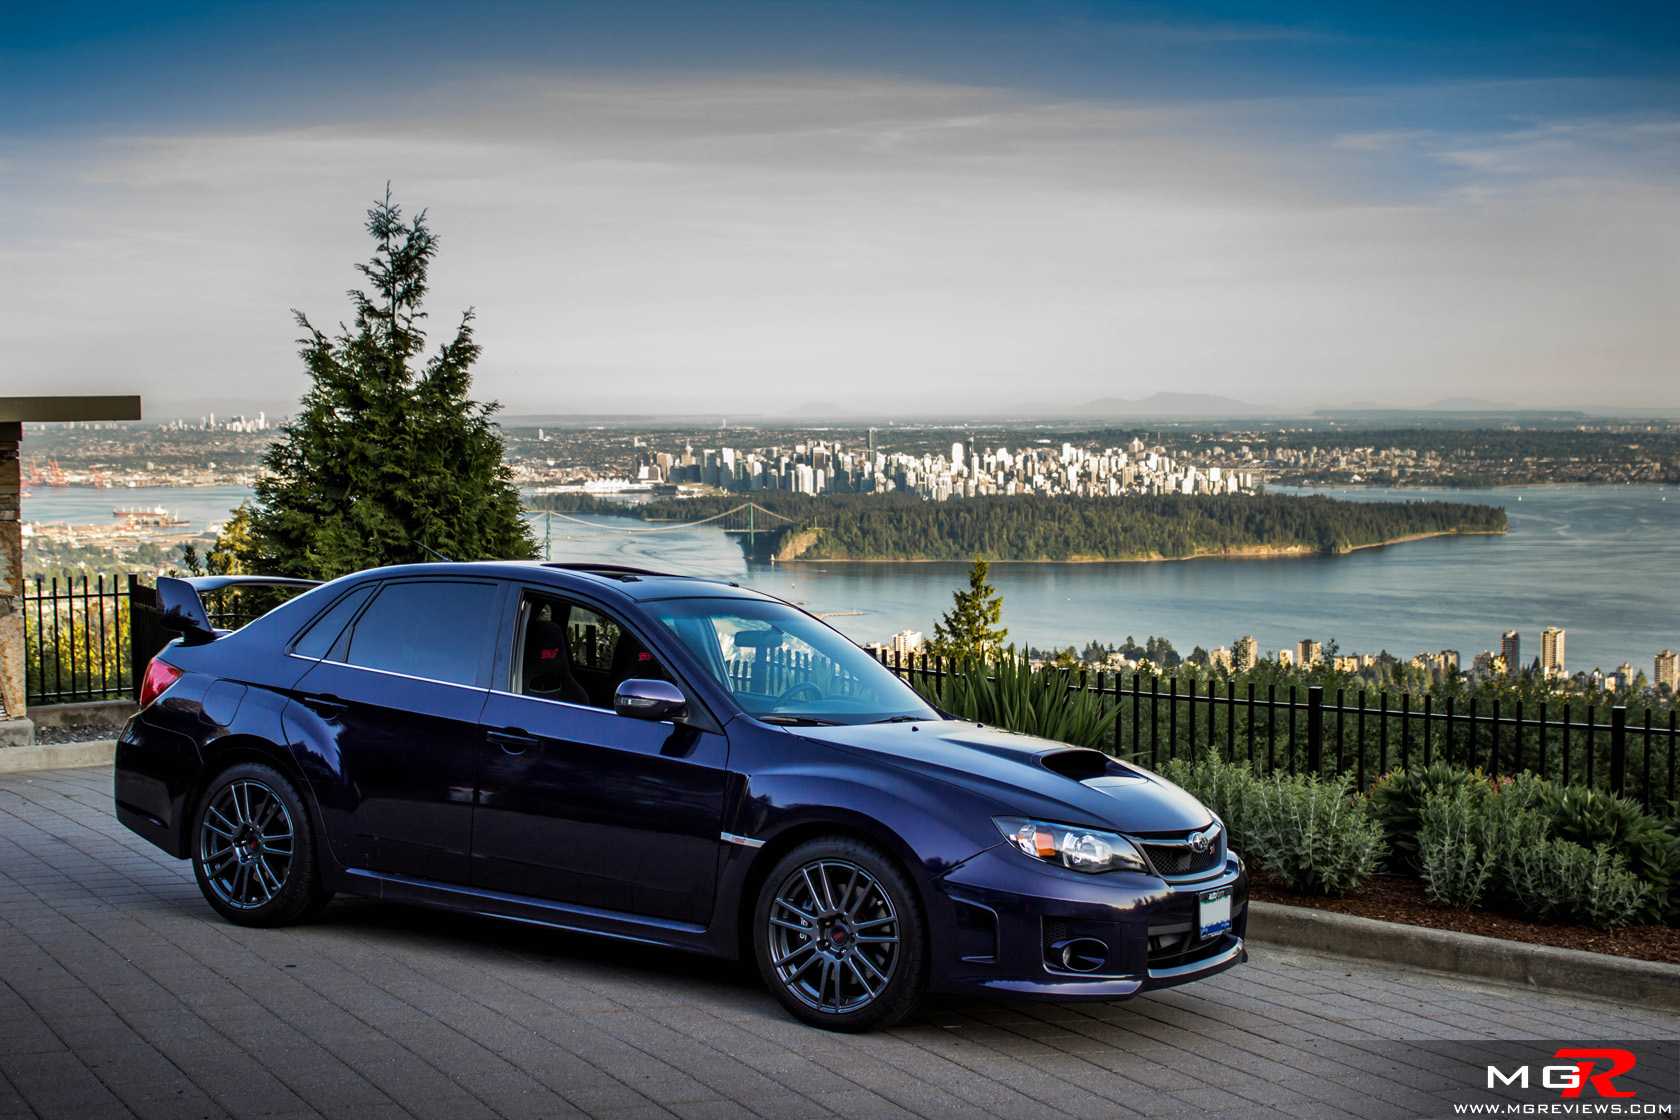 review 2012 subaru impreza wrx sti m g reviews. Black Bedroom Furniture Sets. Home Design Ideas